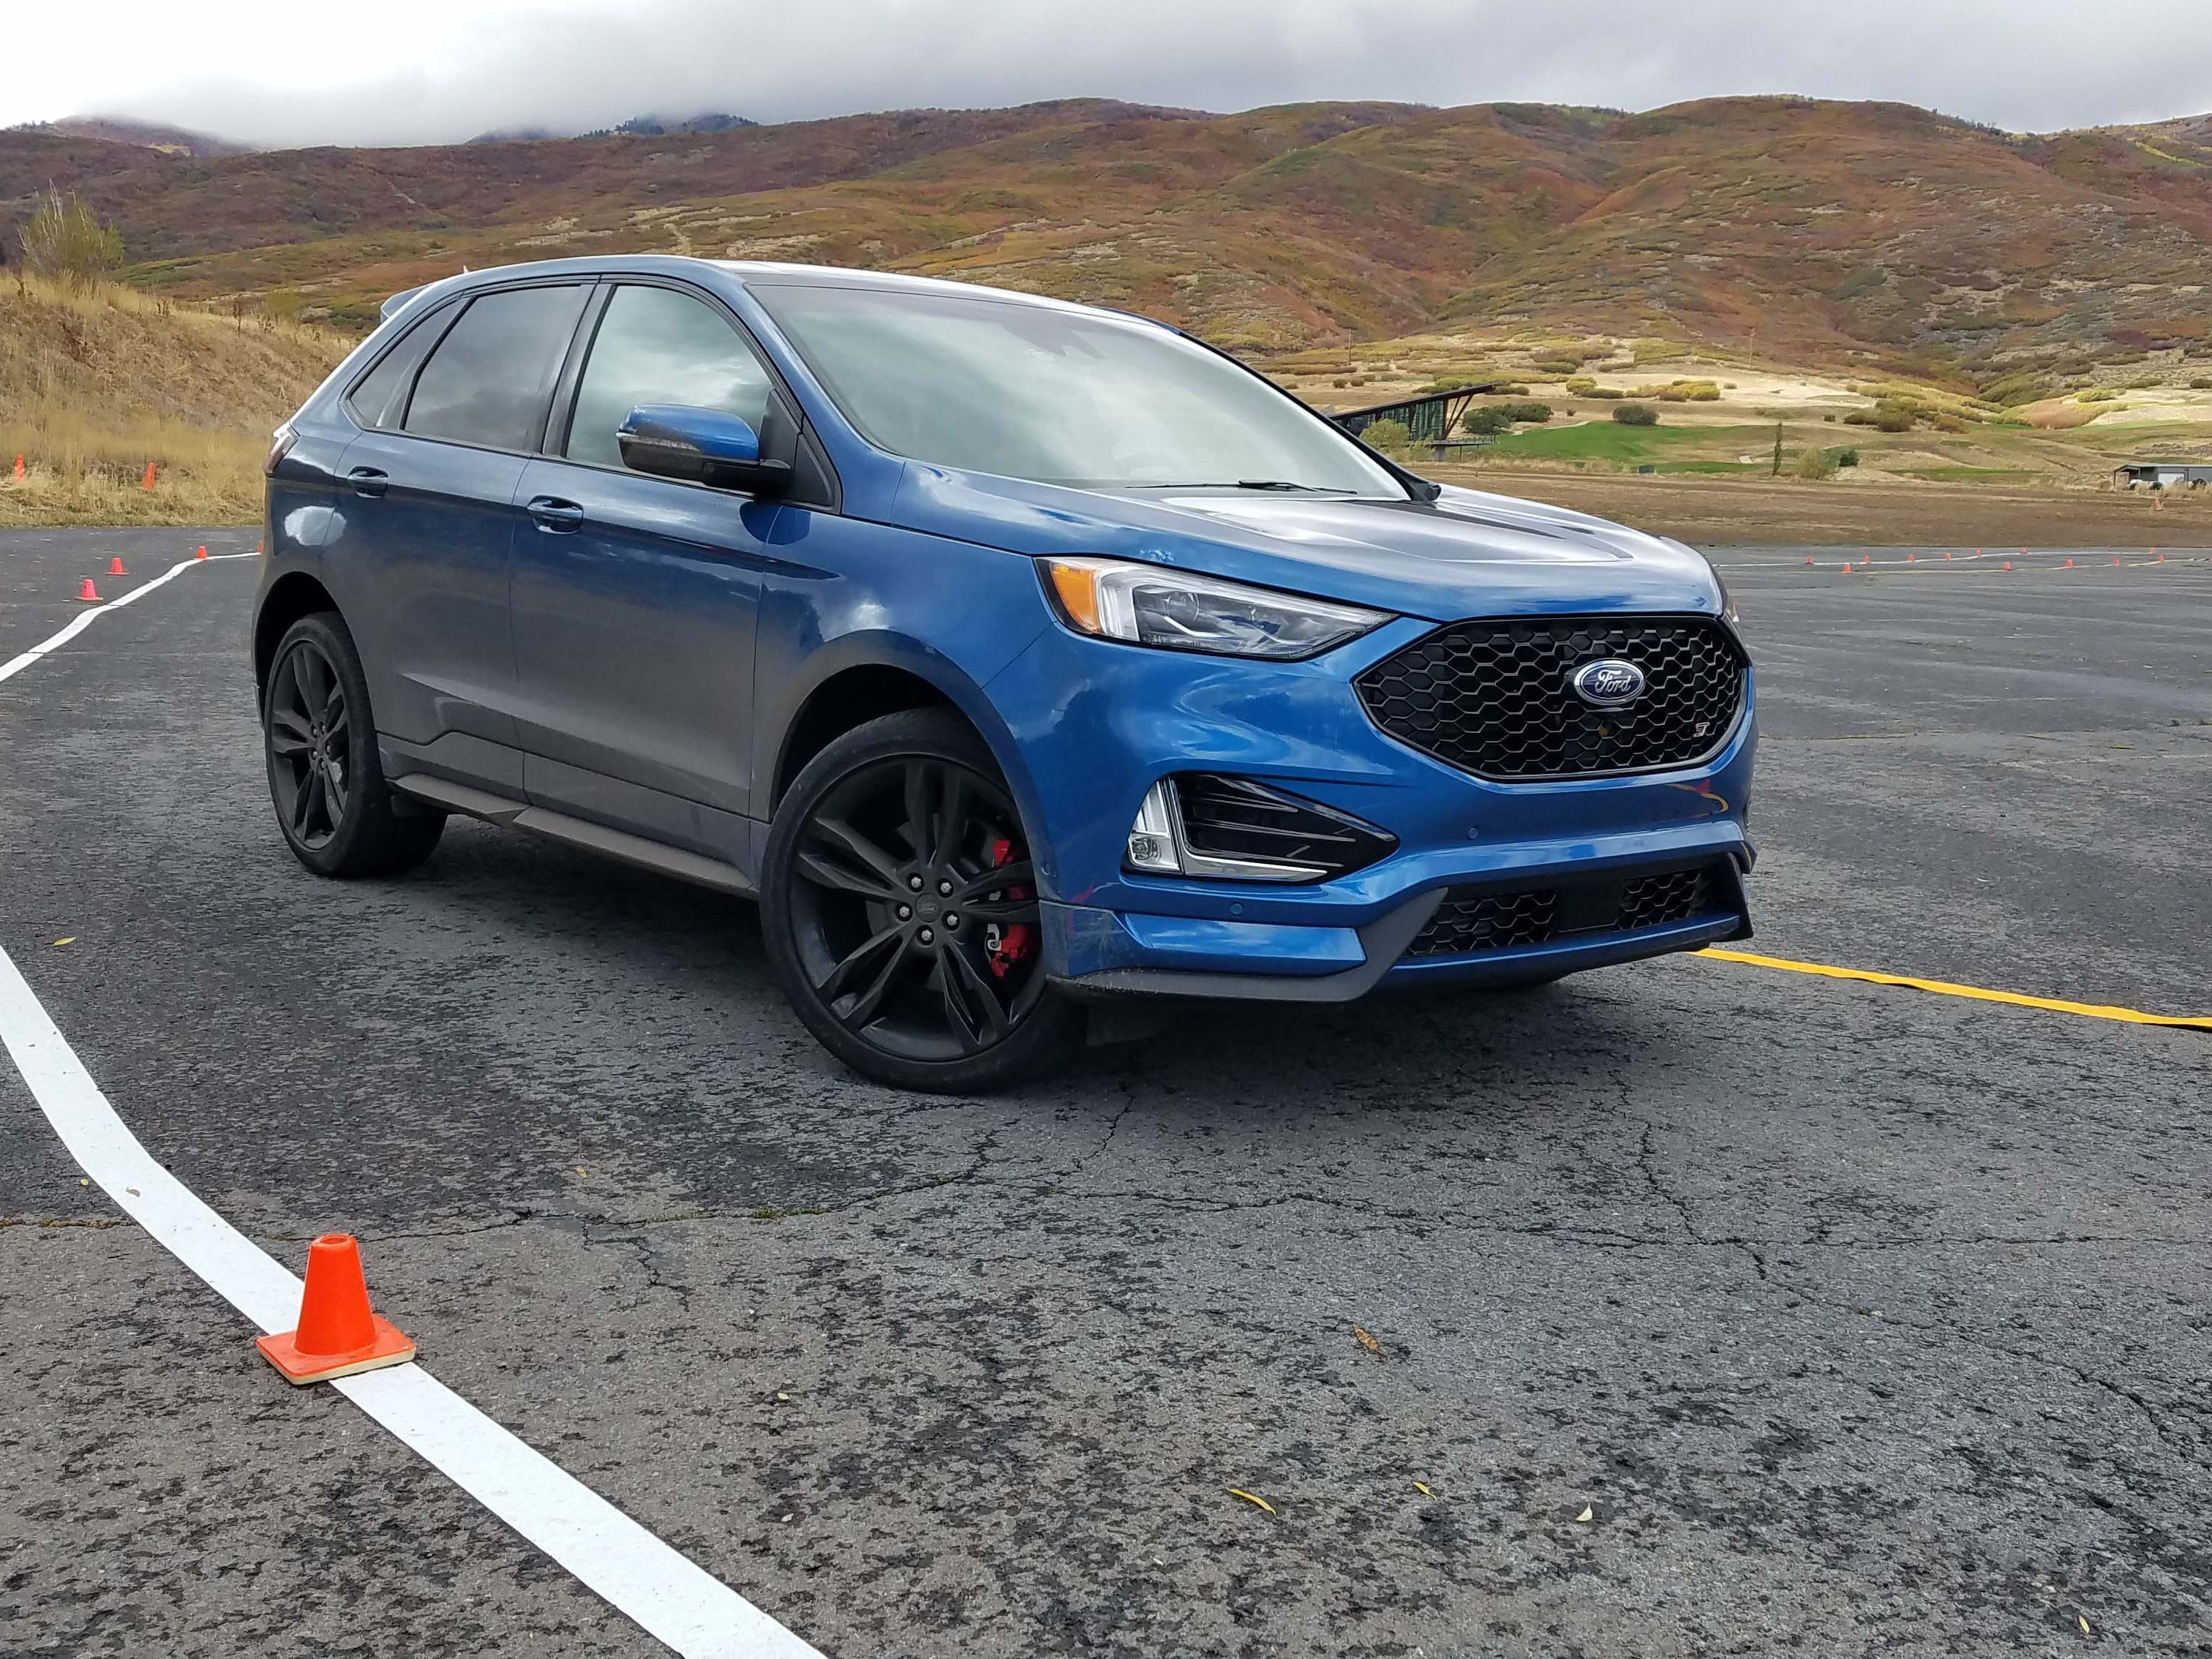 Autocrossing a Ford Edge? The 2019 Ford Edge ST is surprisingly nimble on a pylon-marked course despite its 4,477-pound girth.